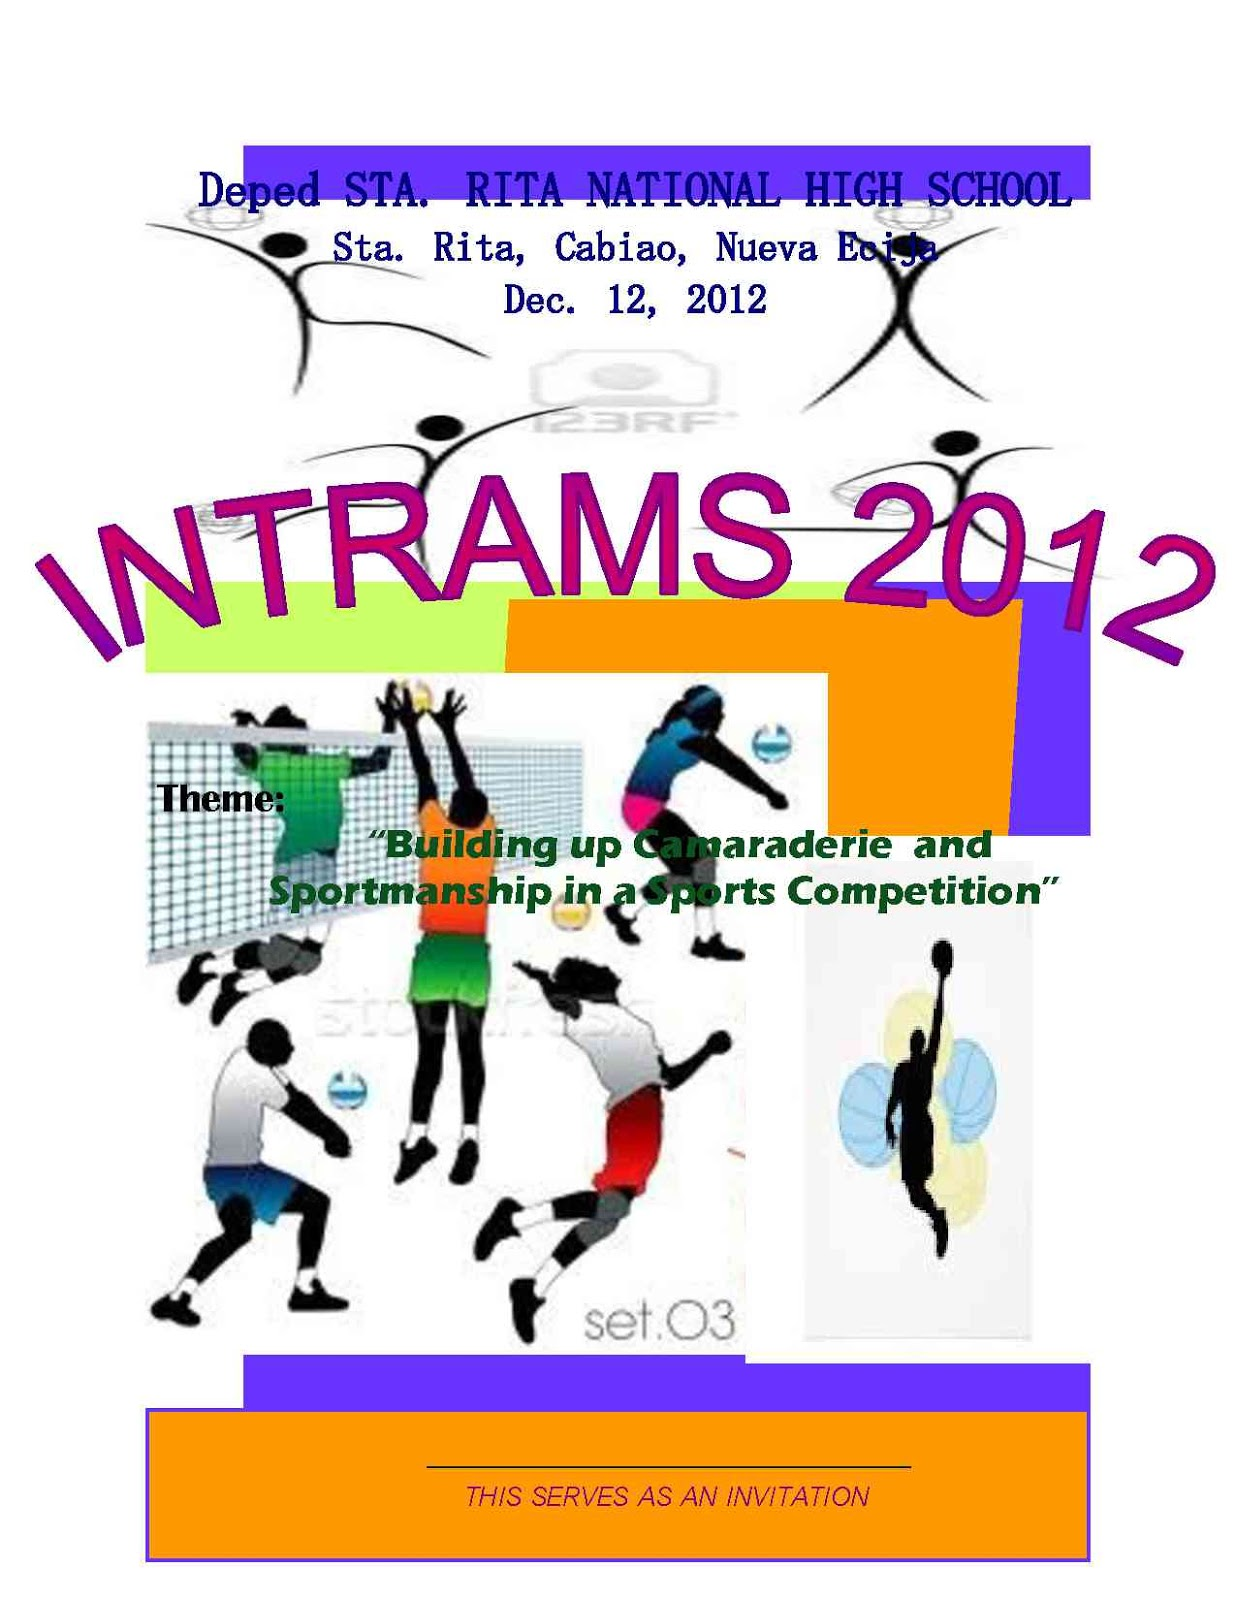 iRonicAlly tiTled: intramurals: Sports Competition Program